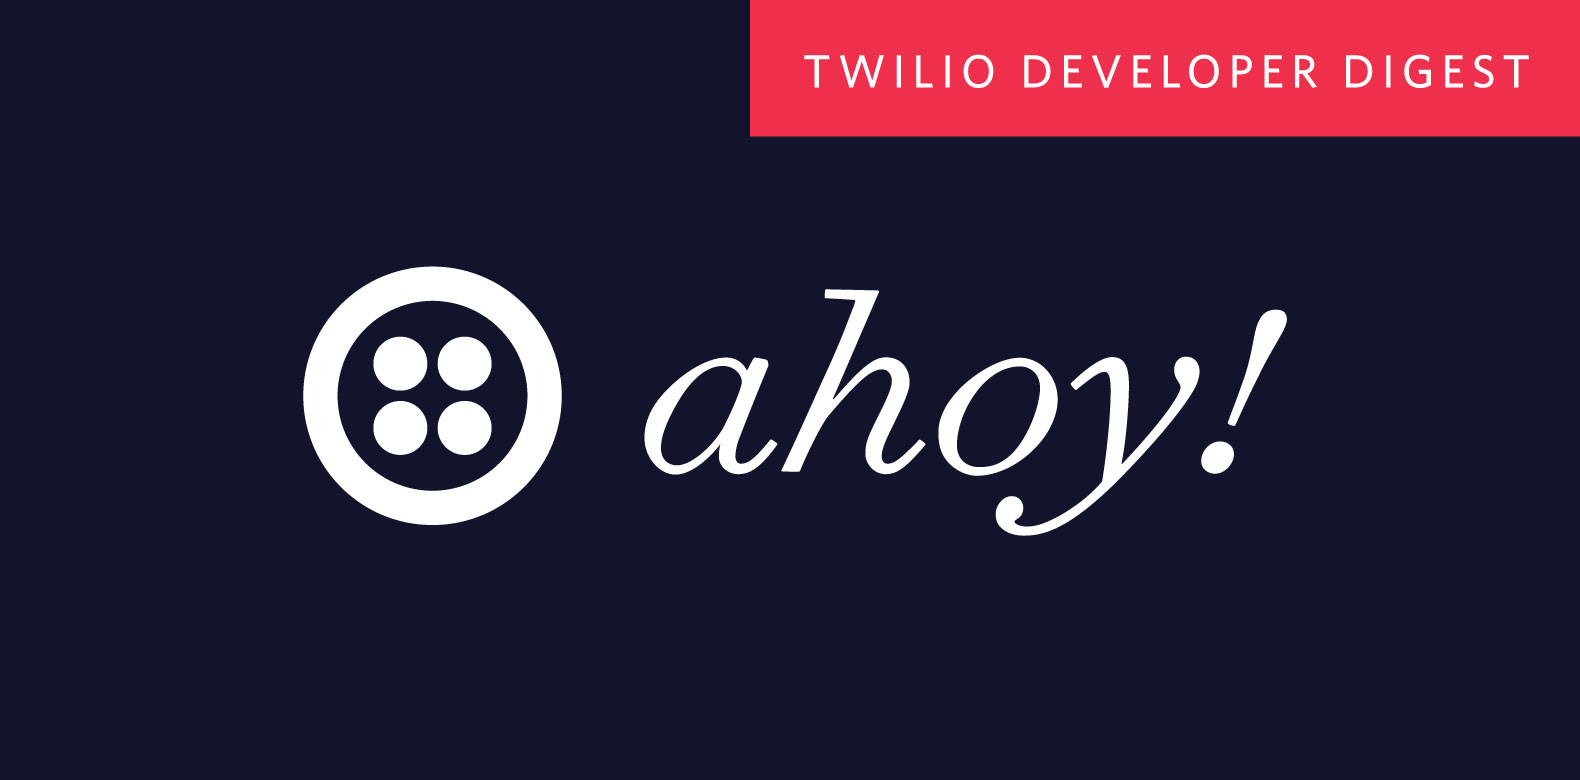 Ahoy - The Twilio Newsletter